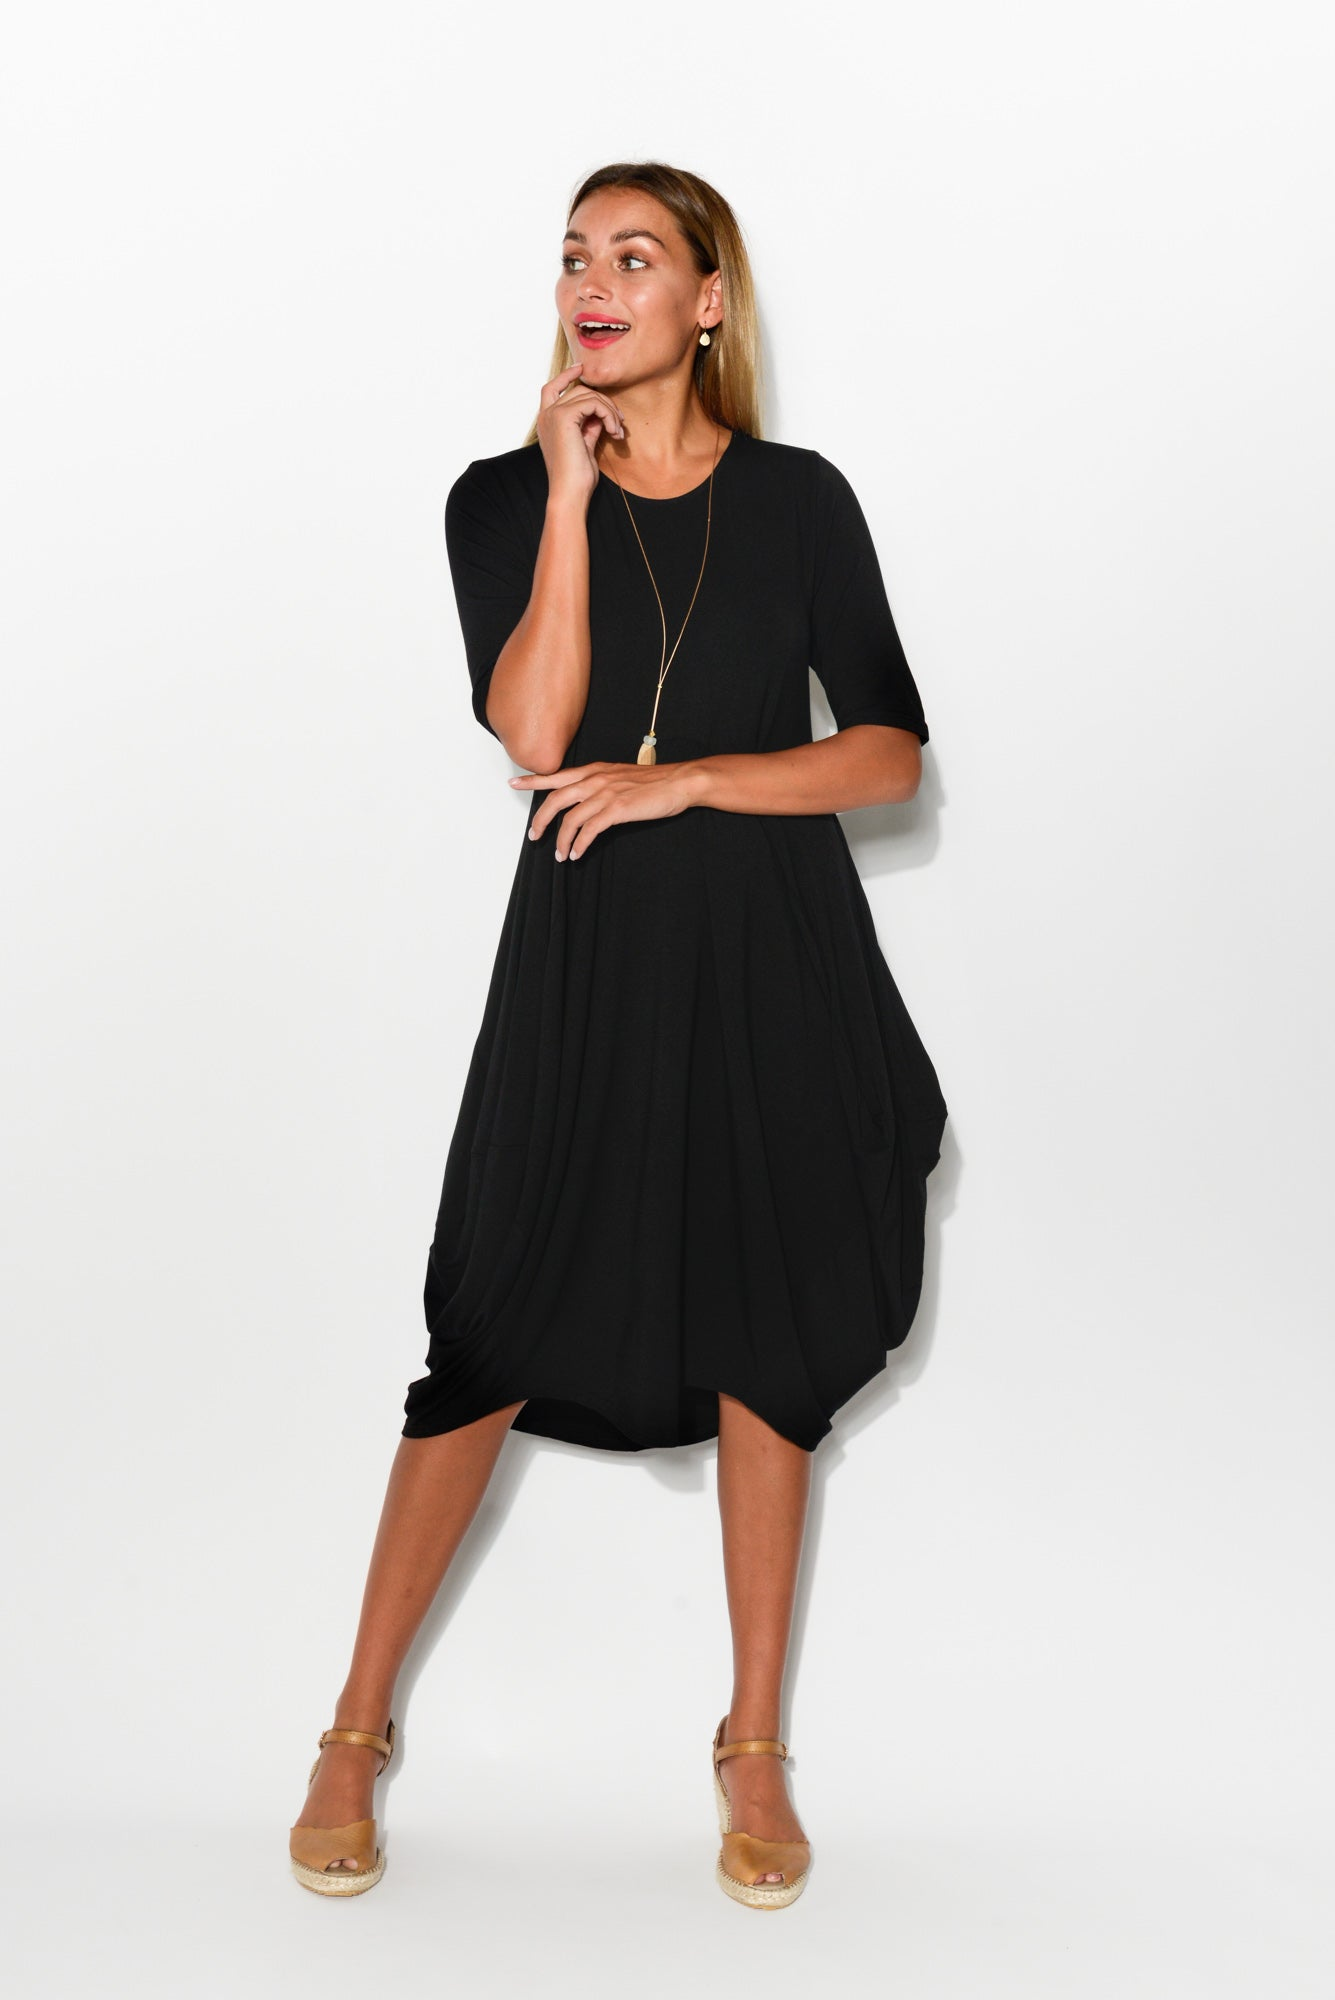 Jenna Black Bamboo Dress - Blue Bungalow